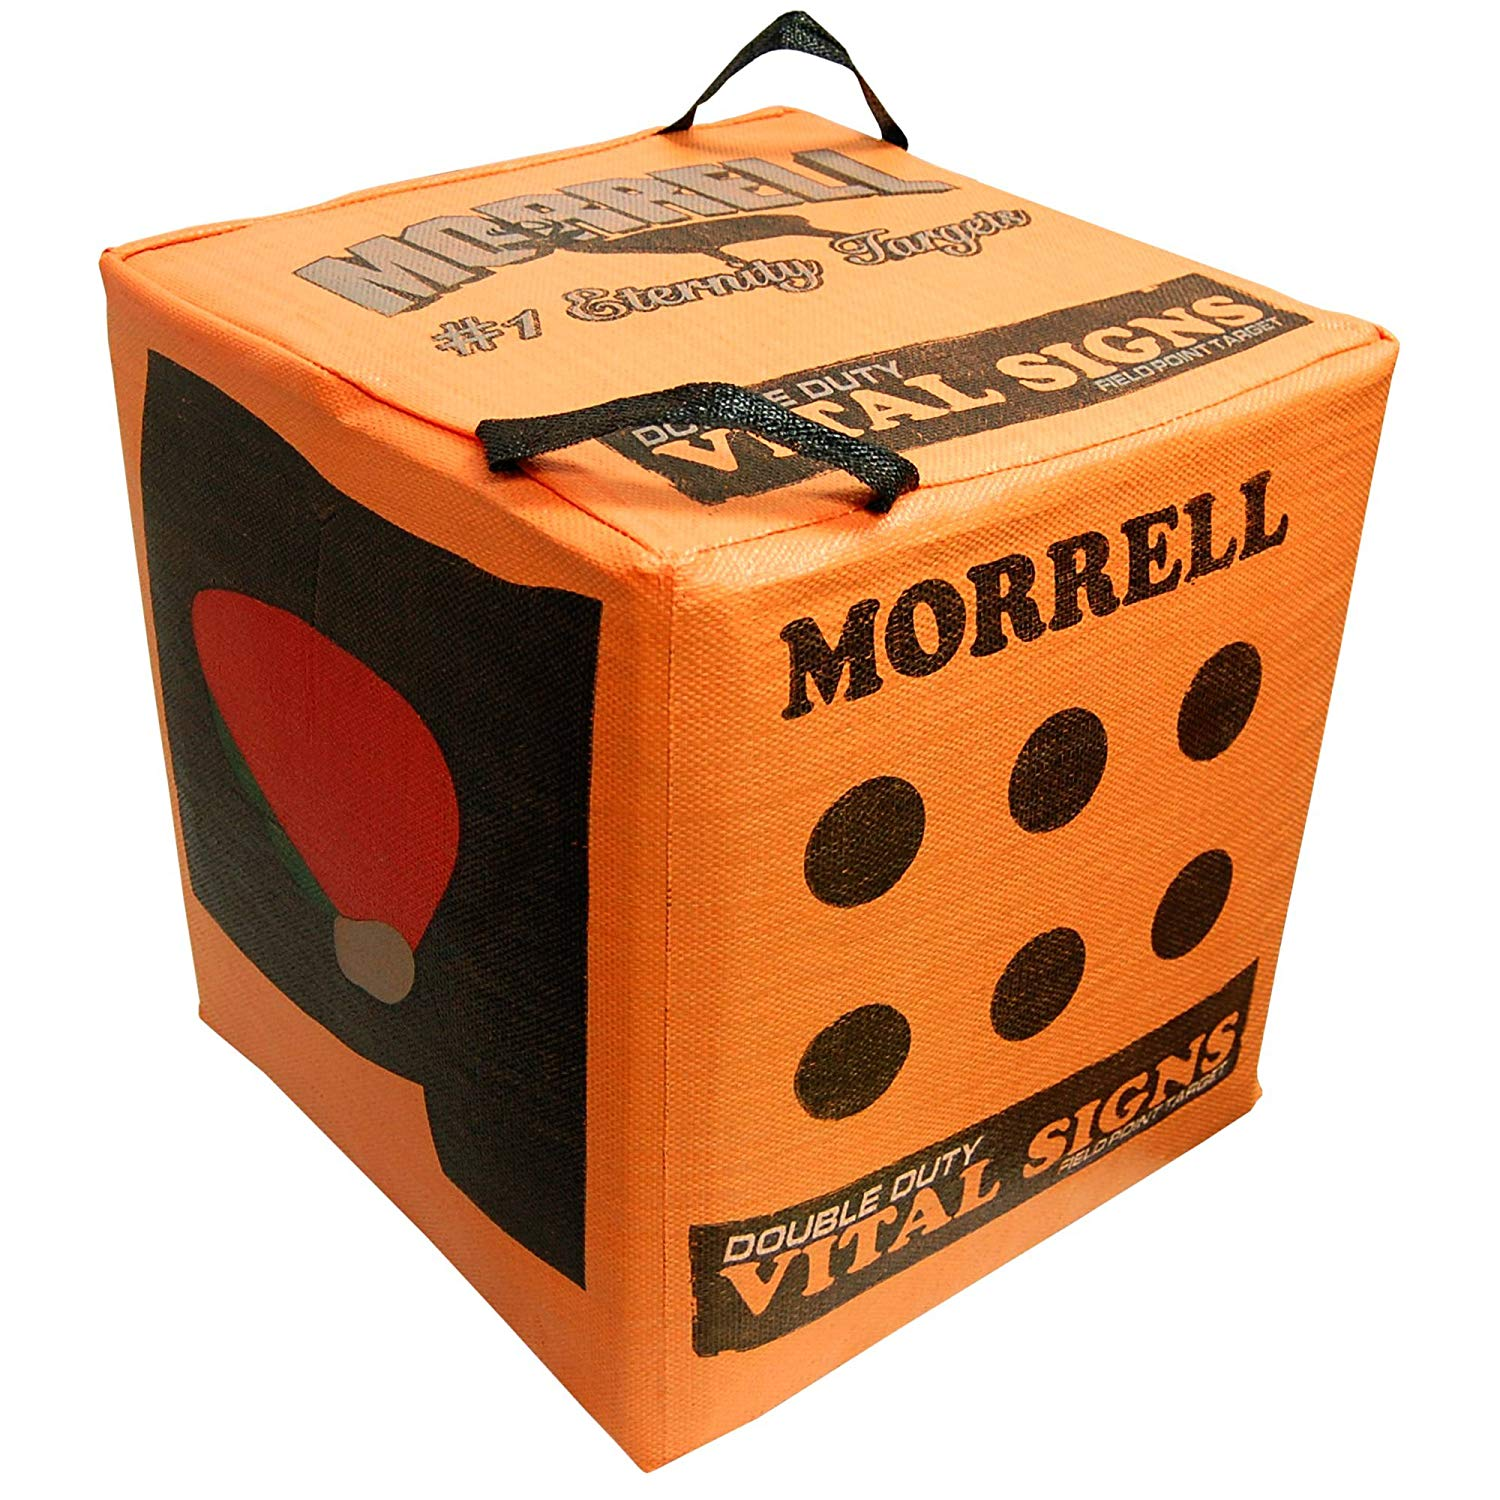 Morrell Vital Signs Field Point Archery Bag Target